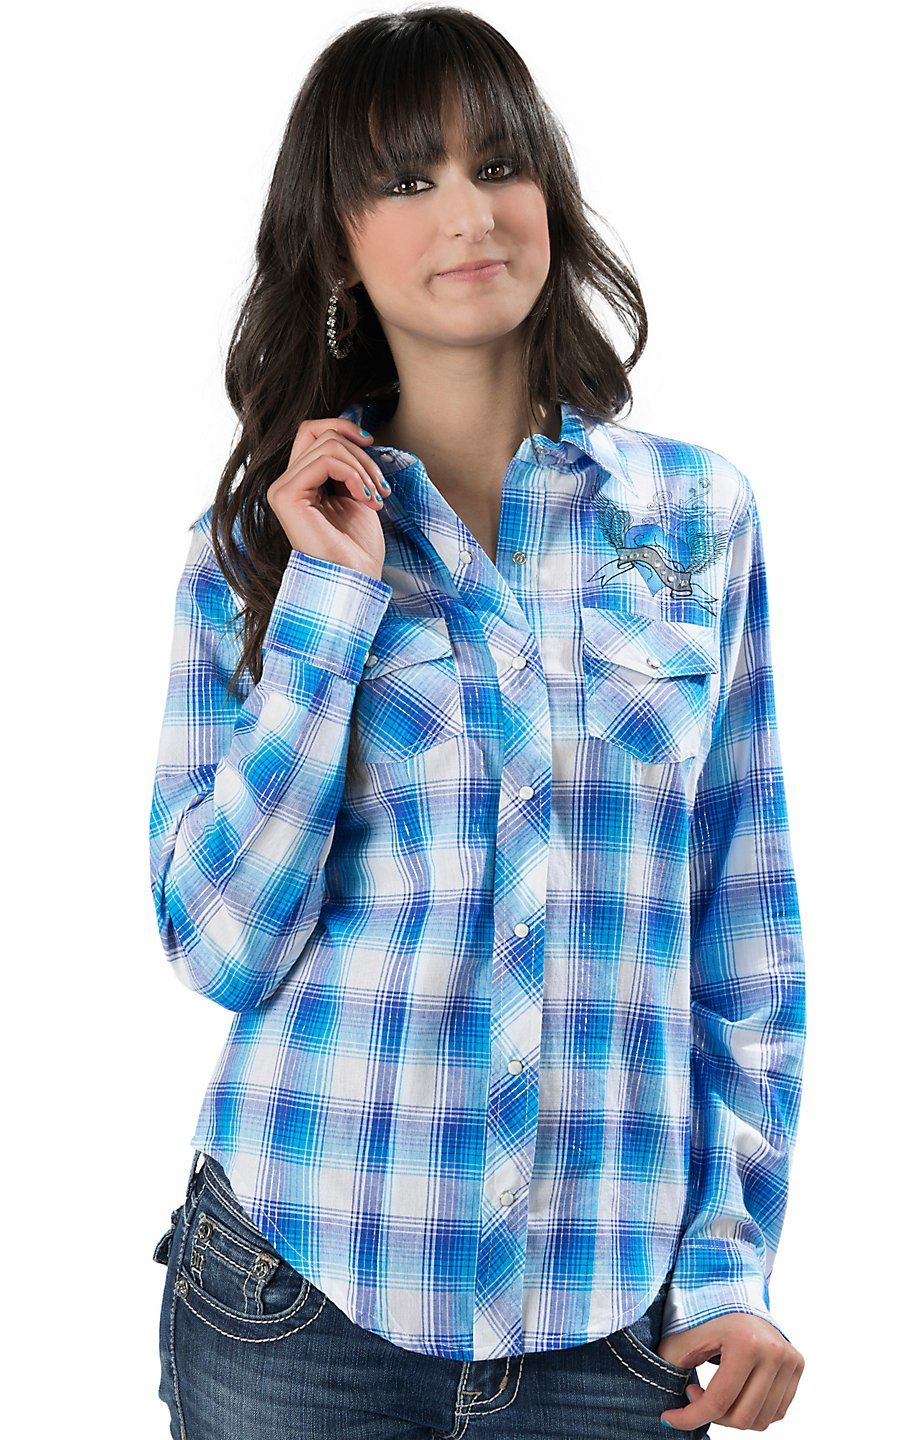 6756e3c8ac8 Cumberland Outfitters® Women s Blue Plaid with Winged Heart and Rhinestones  Long Sleeve Western Shirt - Plus Size